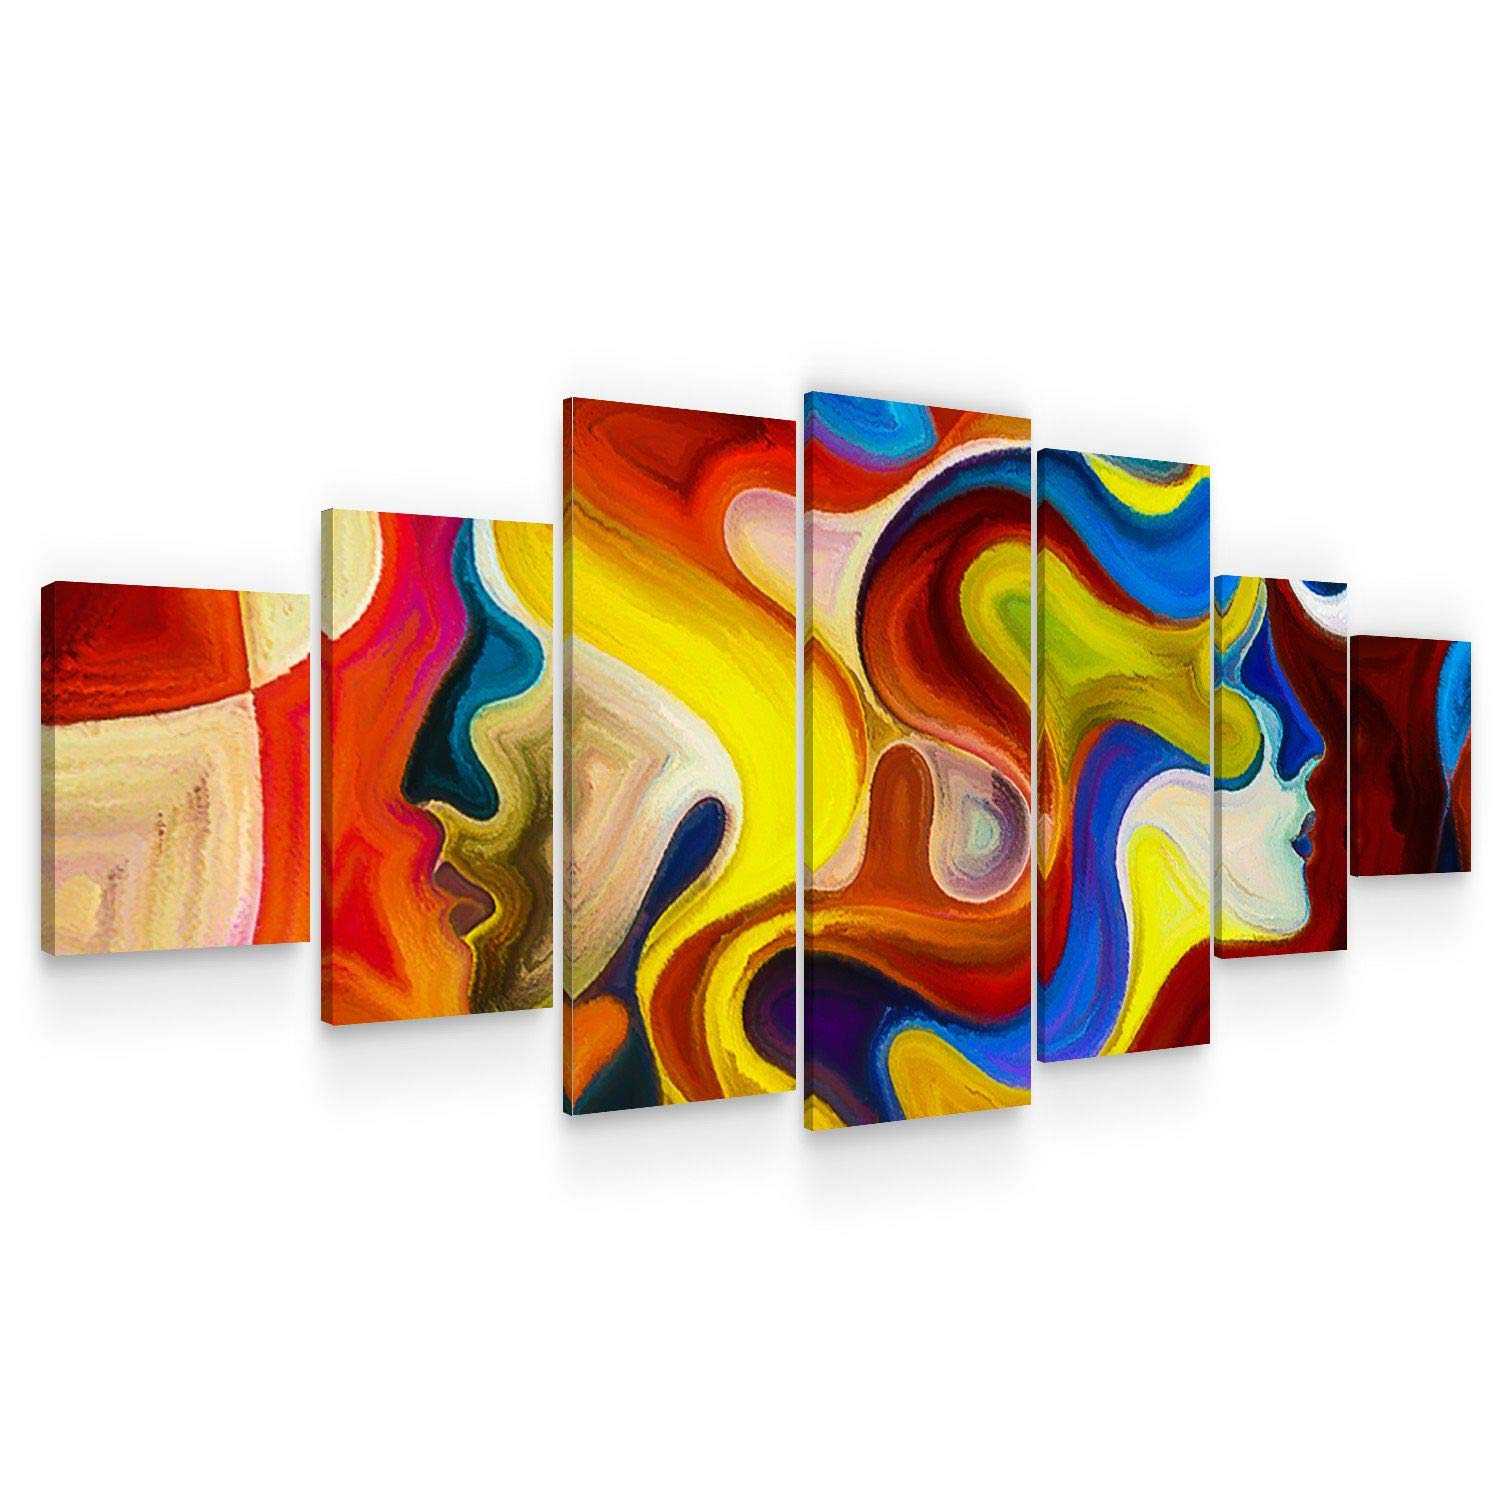 Startonight Large Canvas Wall Art Abstract - Nymphs with Curly Hair - Huge Framed Modern Set of 7 Panels 40 x 95 Inches